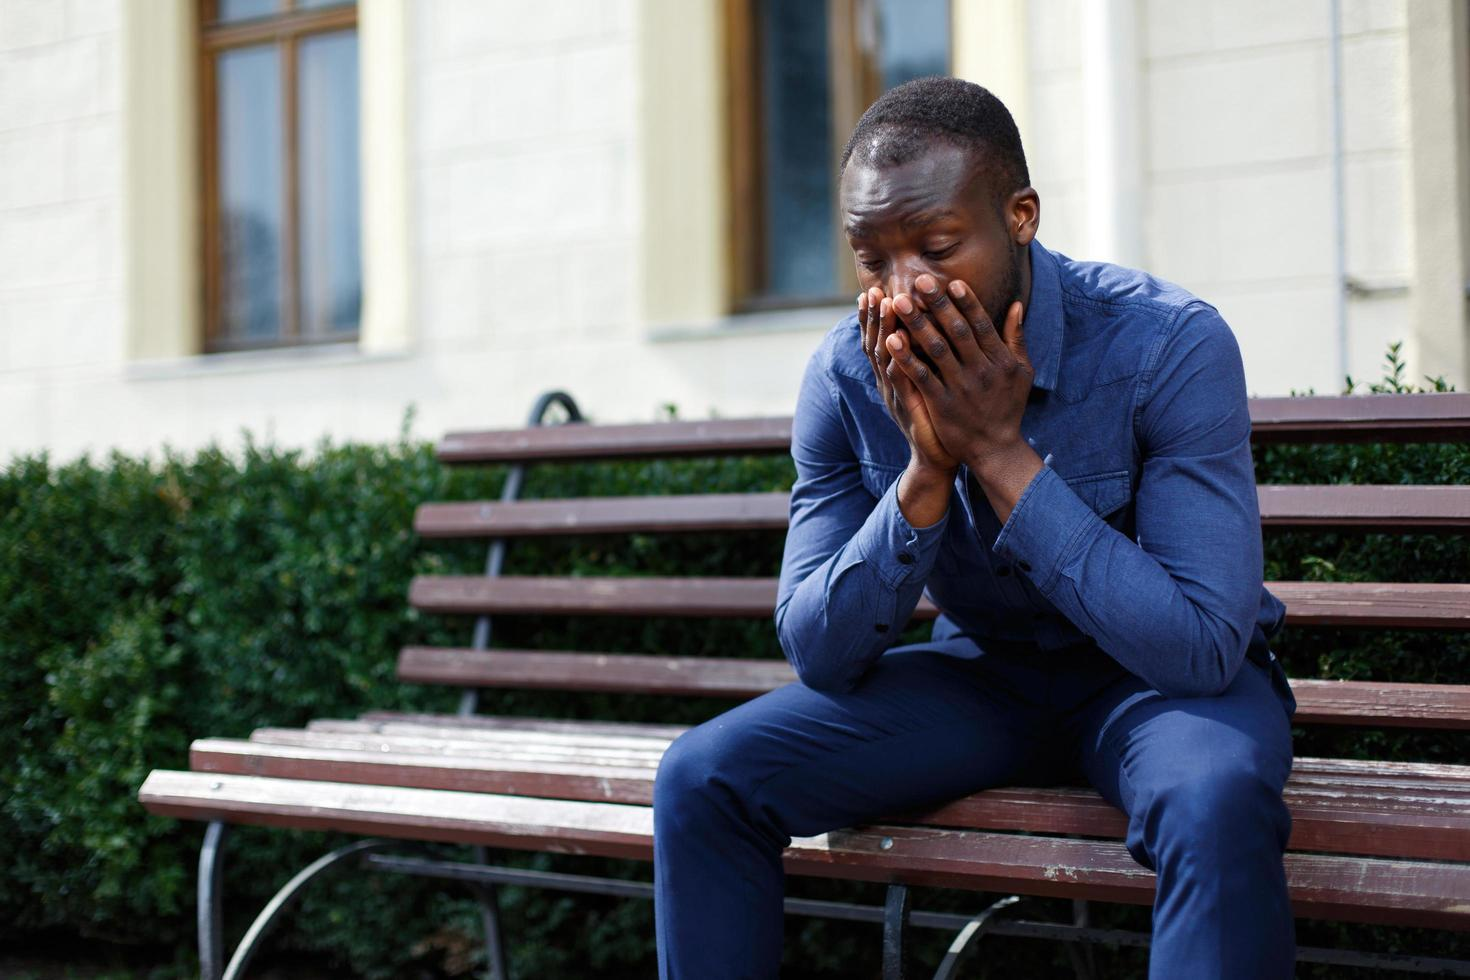 Tired African American man sits on the bench outside photo